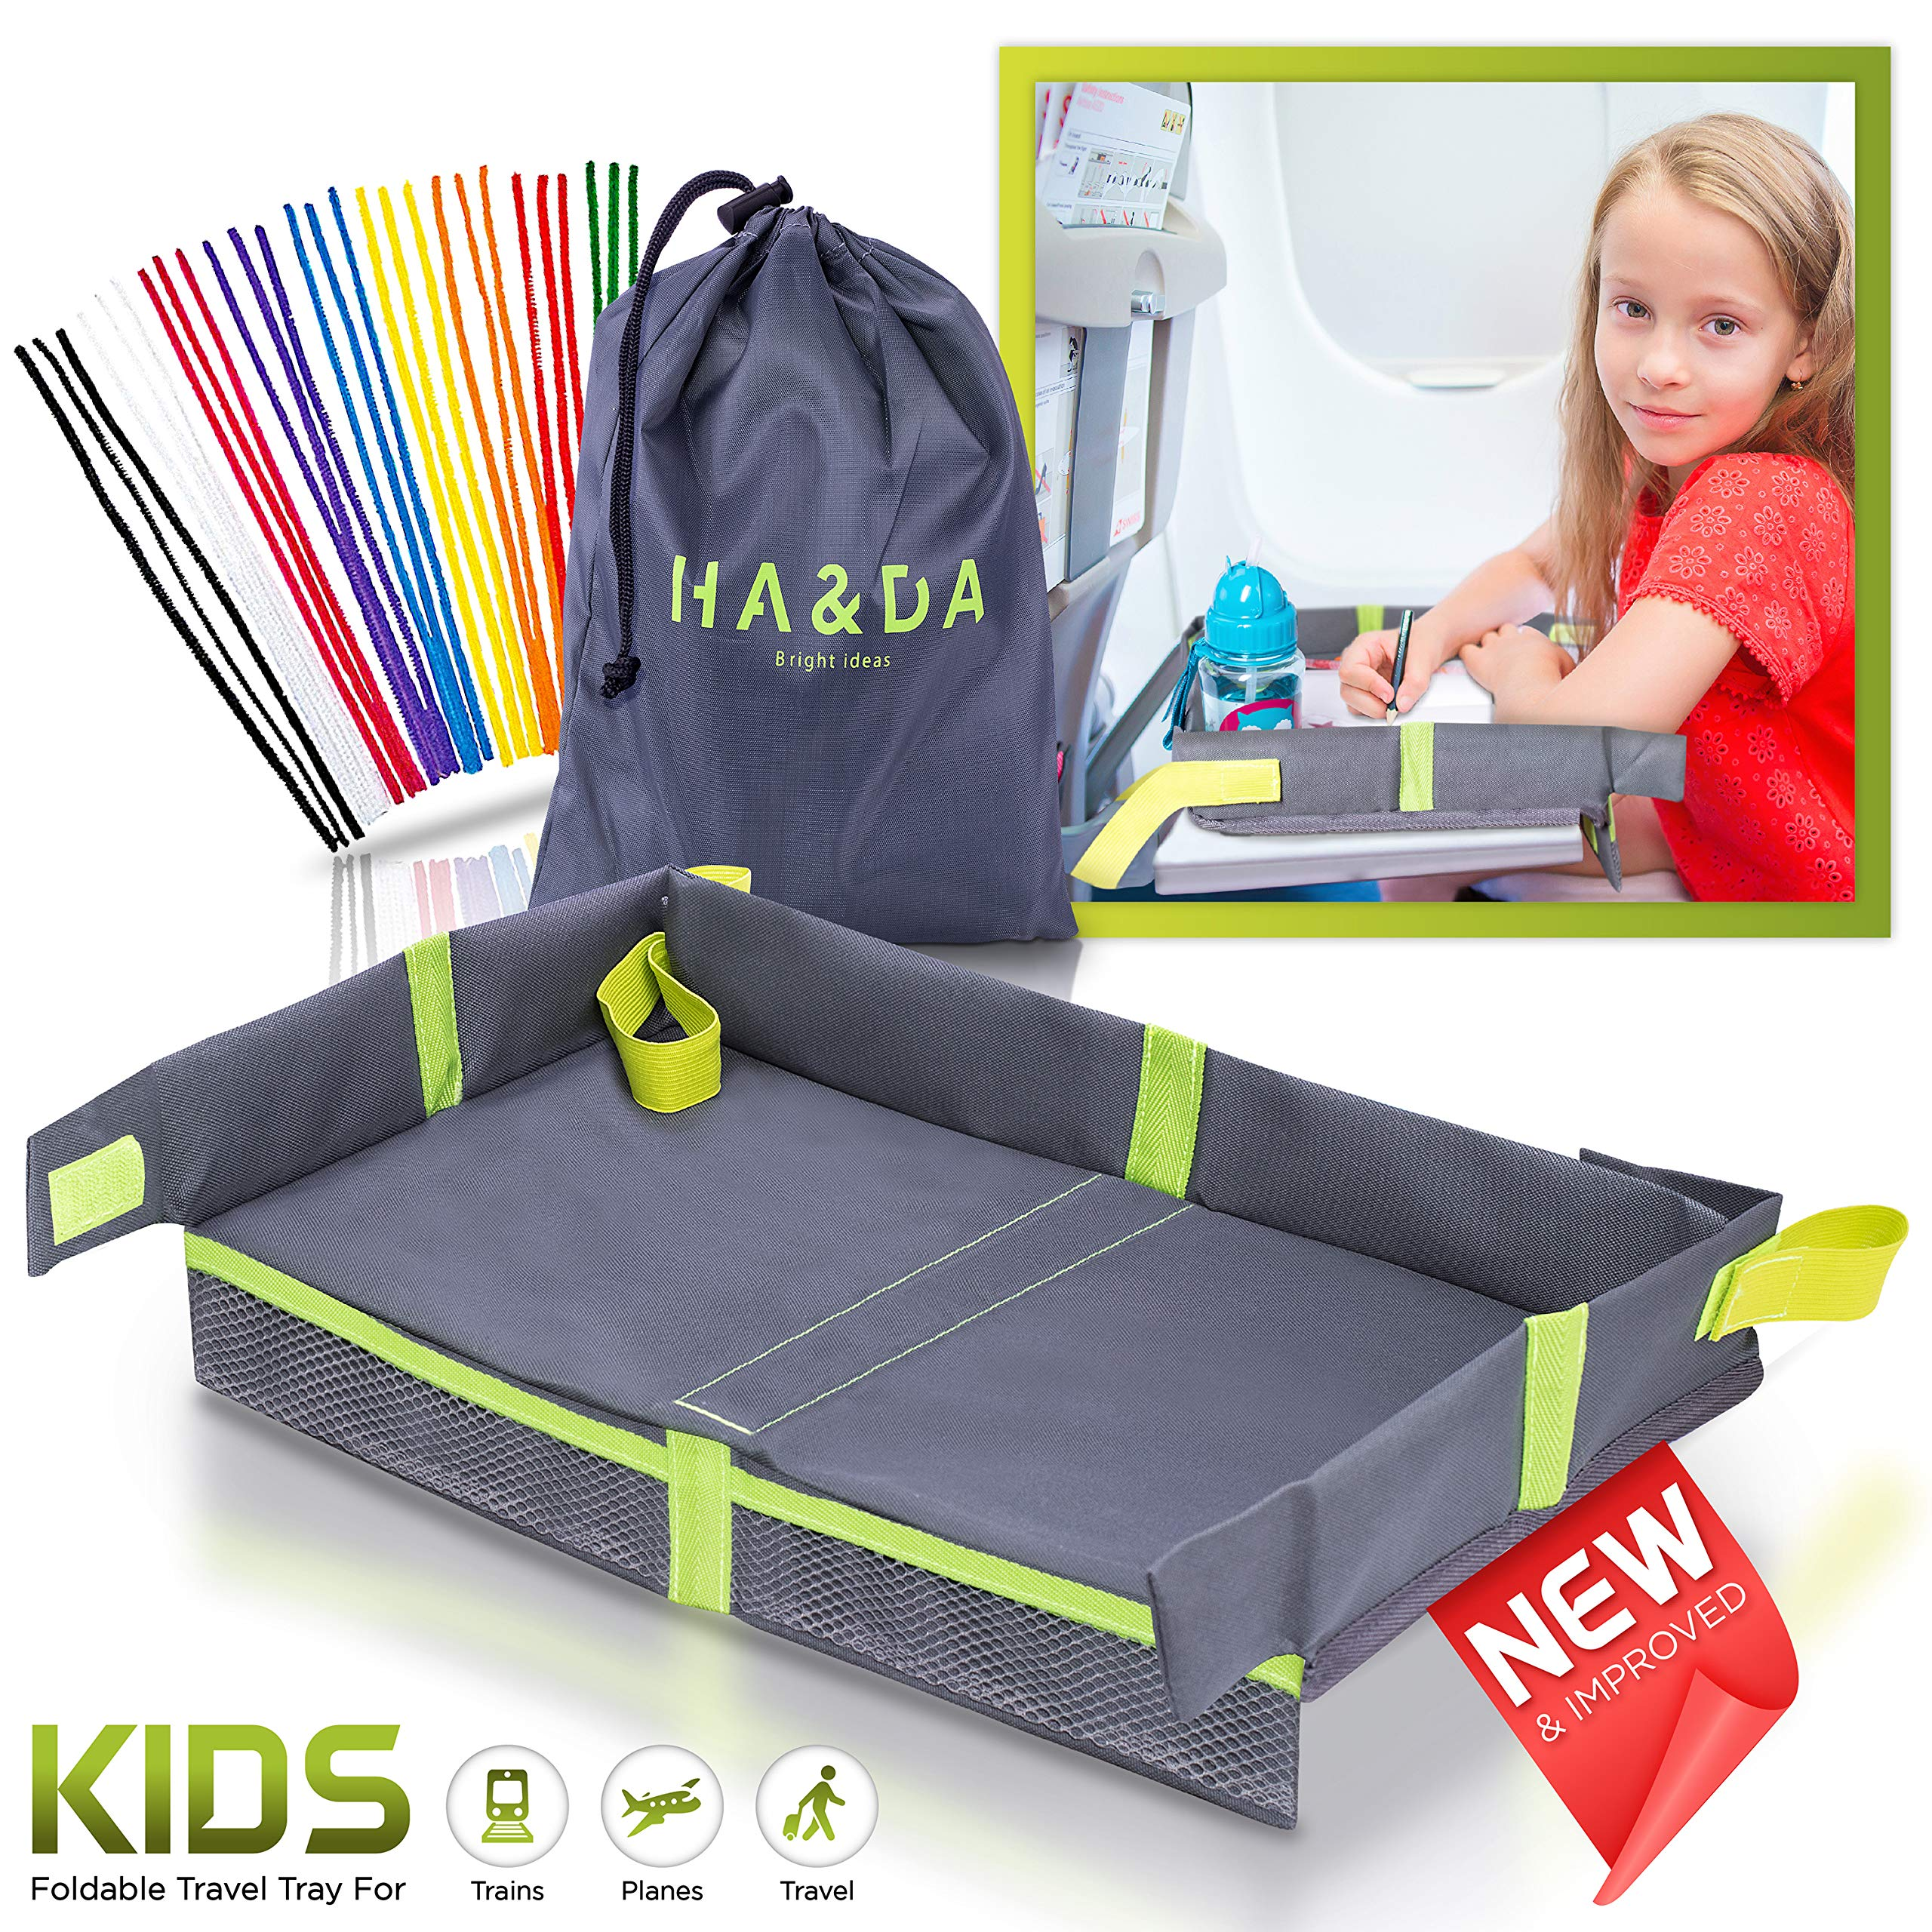 Foldable Kids Travel Tray for Airplane Travel Activities and Games, Use on Plane/Train Tray Table, Toddlers and Children, Unisex - Compact Light Portable - W/Fun Chenille Pipe Cleaners for DIY by Ha&Da